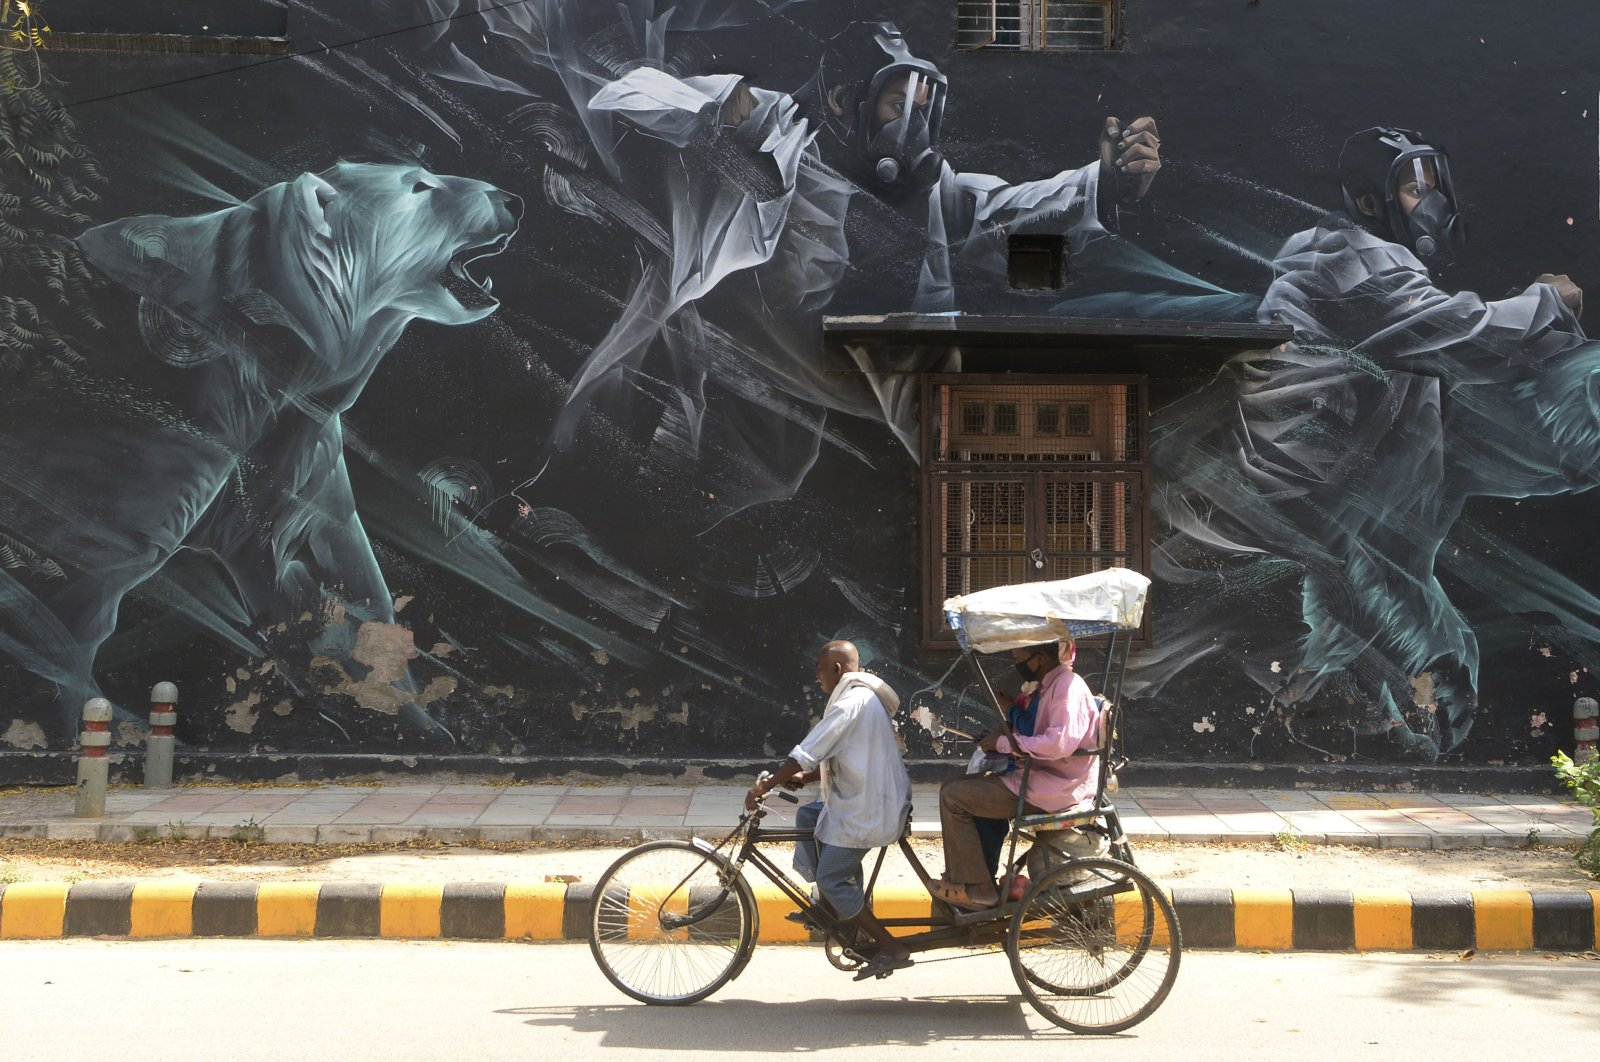 A rickshaw driver carries passengers wearing facemasks past a mural at Lodhi Art District during a government-imposed nationwide lockdown as a preventive measure against the COVID-19 coronavirus, in New Delhi on April 13, 2020. (Photo by SAJJAD HUSSAIN / AFP)